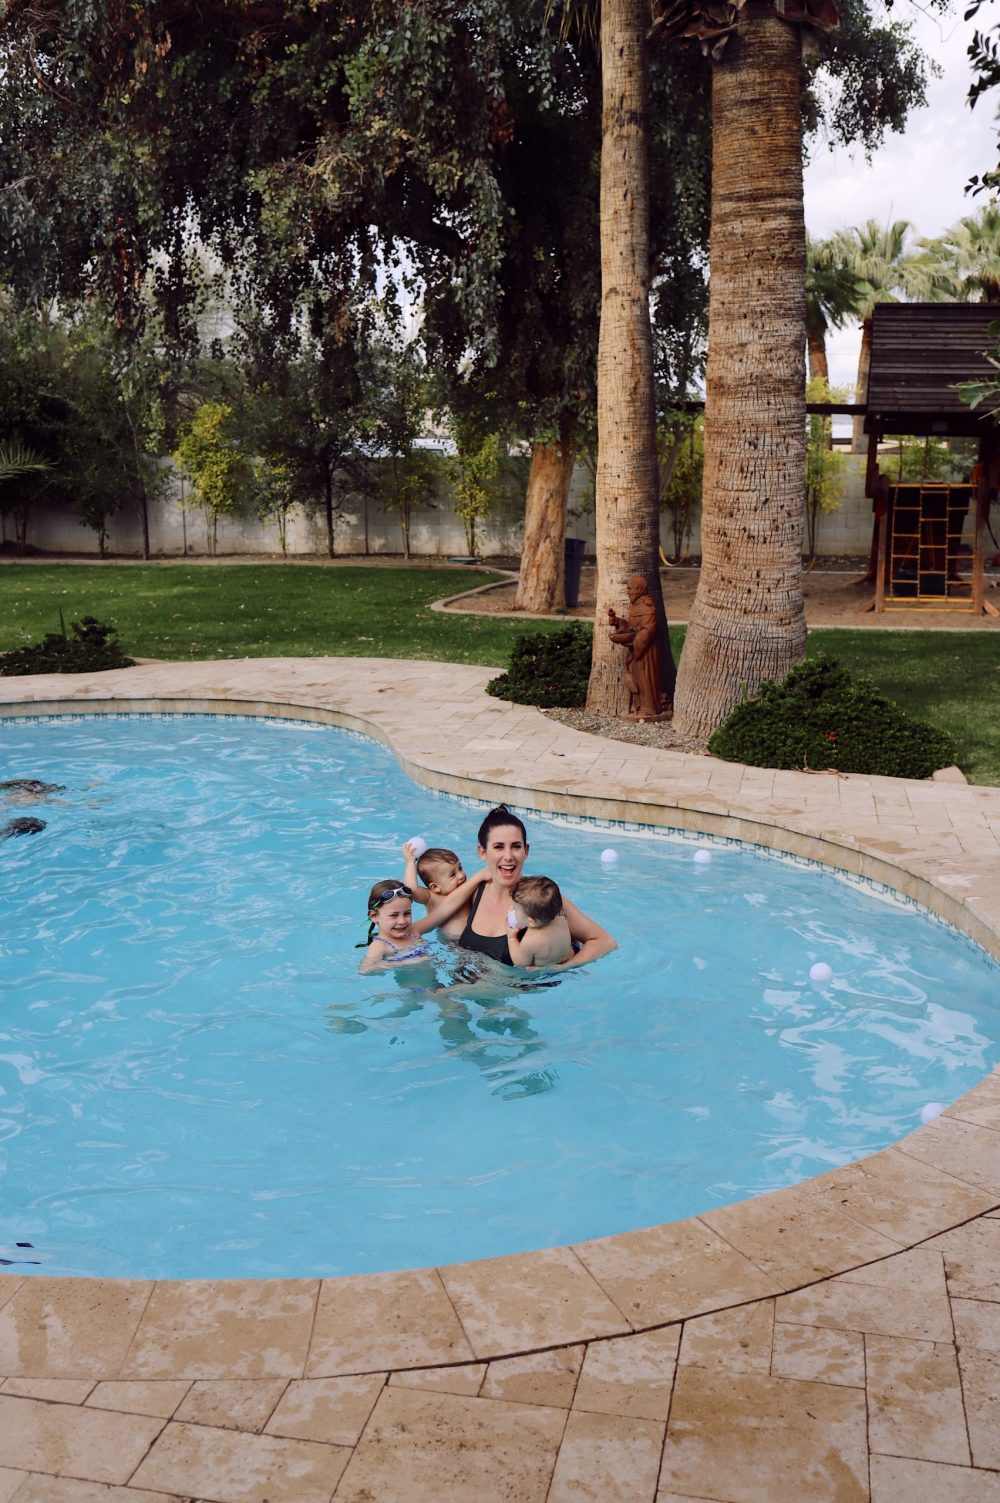 One of the Best Secret Winter Sun Destinations, Scottsdale Arizona. Family-friendly property rental at Bella's Villa Voltaire |Guide by popular Florida travel blog, Fresh Mommy Blog: image of a mom and her babies swimming in a outdoor pool.